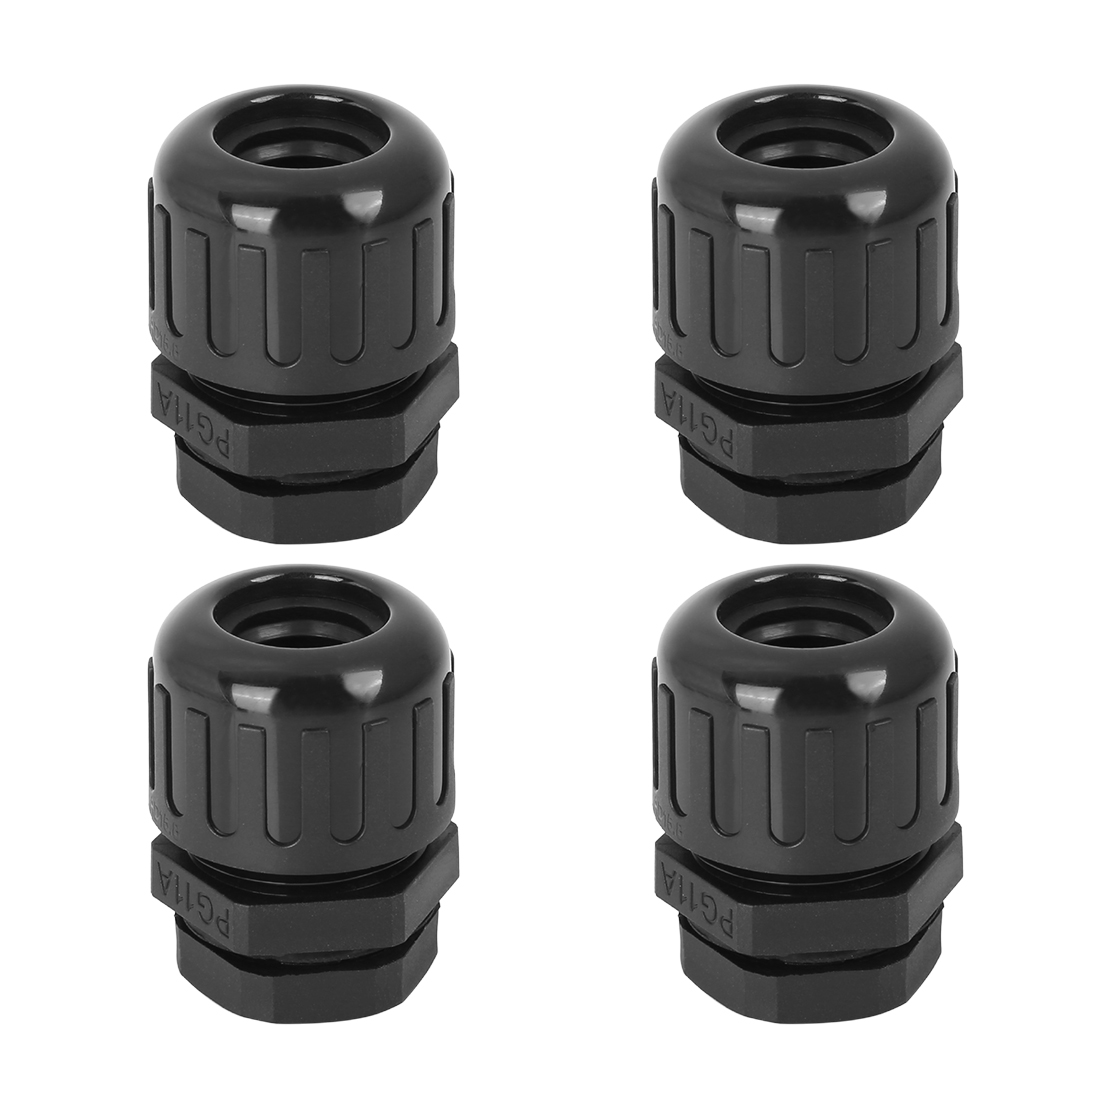 Cable Gland Nylon Plastic Connectors with Lock Nut and Gaskets M18x1.5 4pcs